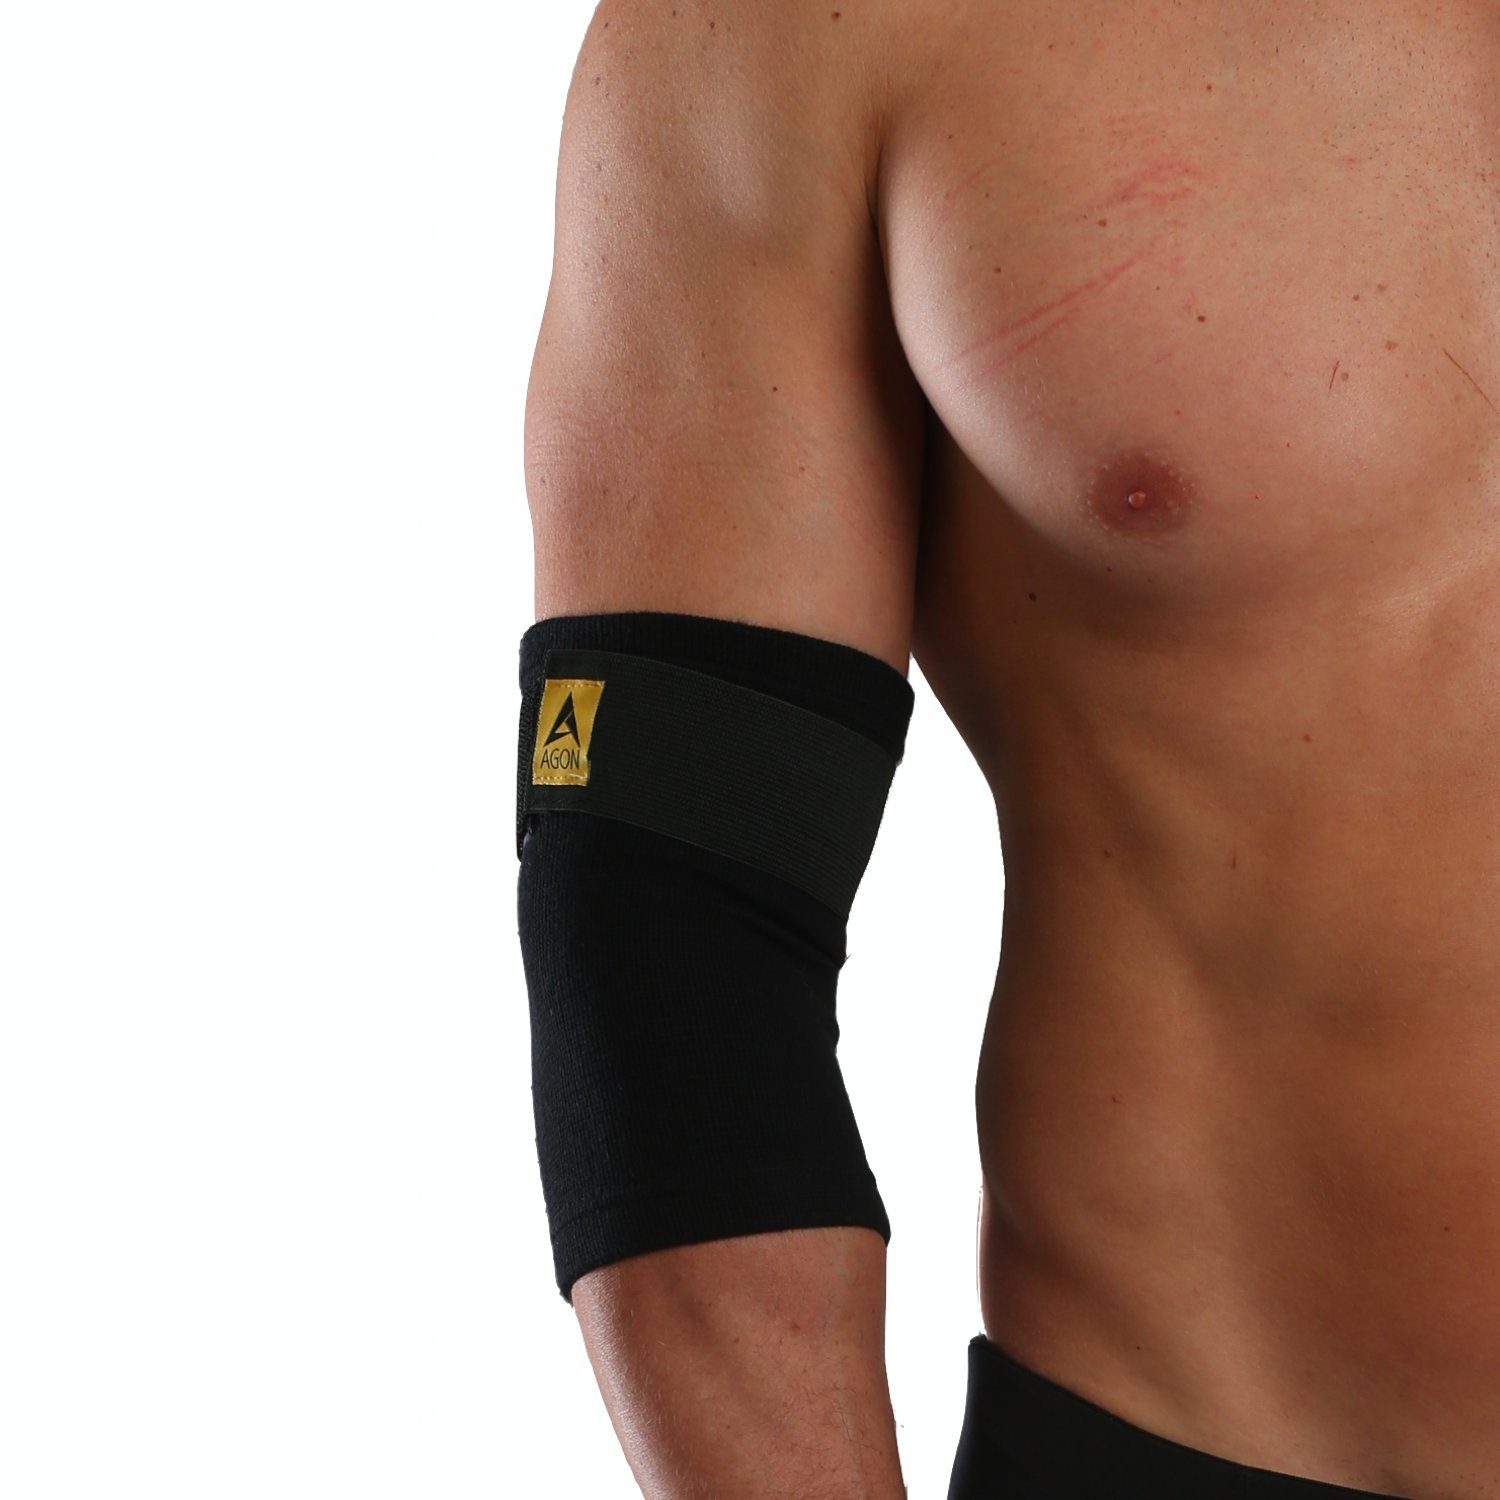 8c3241d8ce Get Quotations · Agon Elbow Brace Compression Sleeve - Elastic Support for  Tendonitis Pain, Tennis Elbow, Golfer's